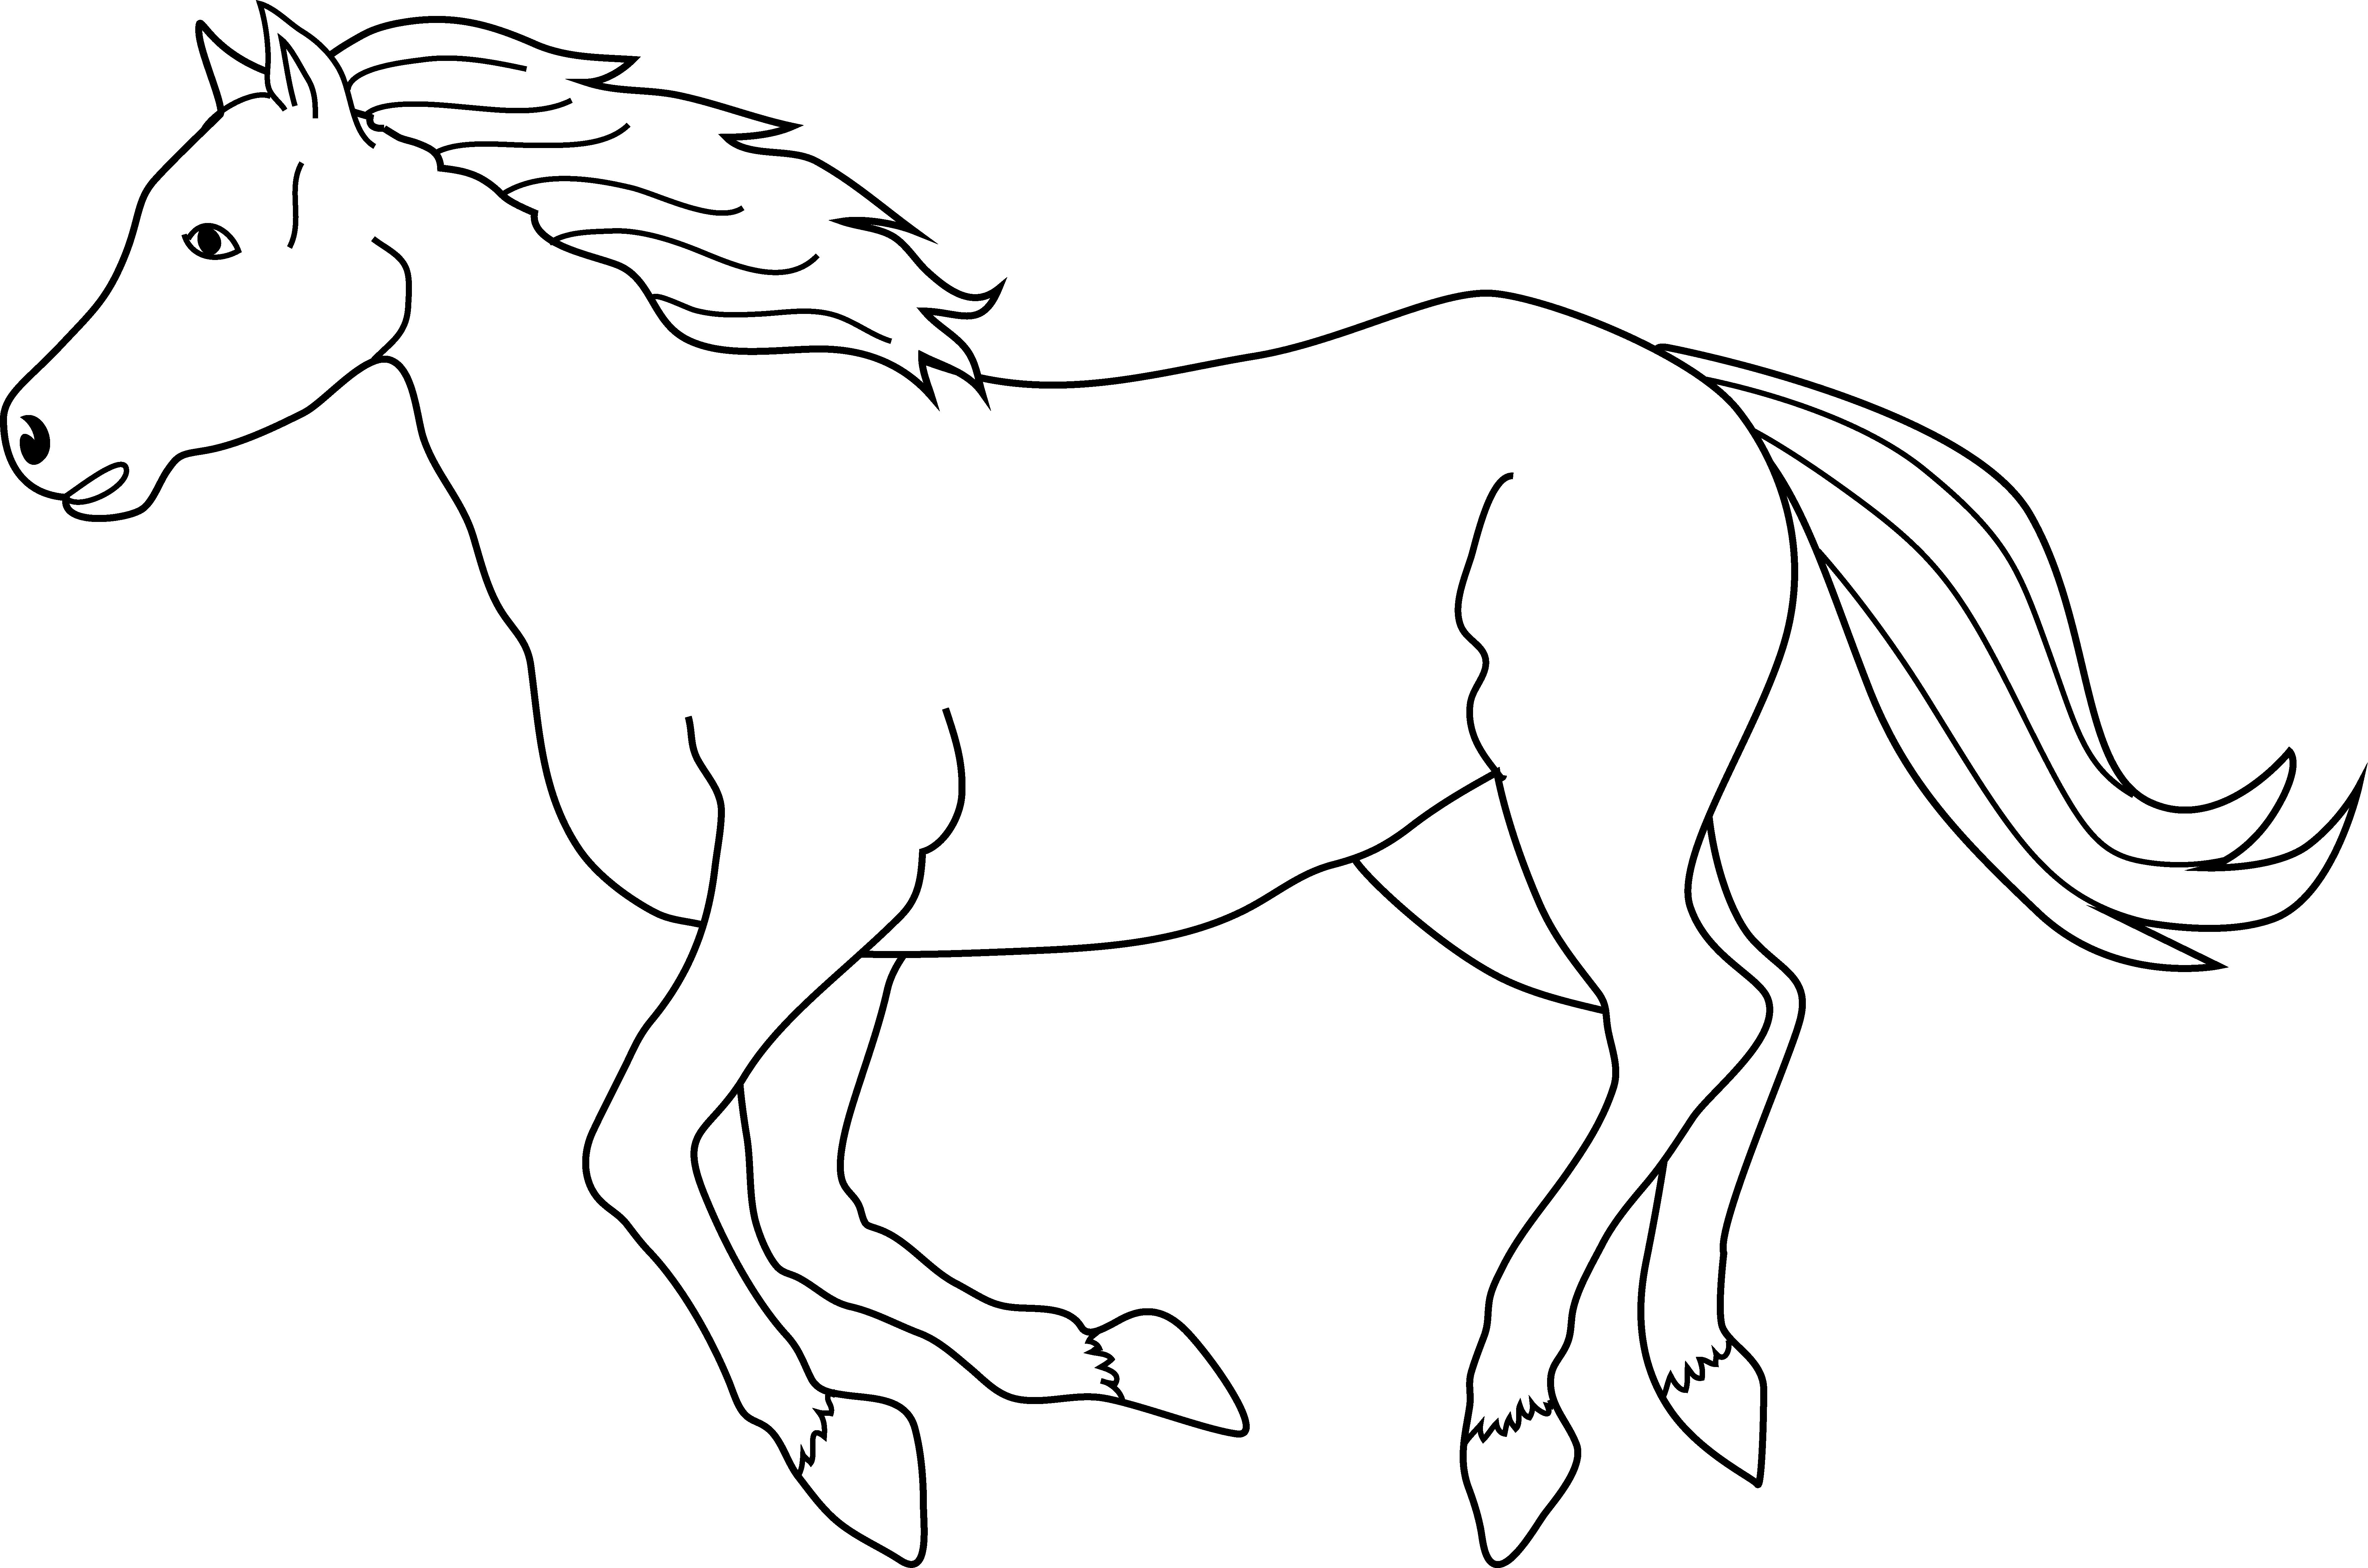 Fjord coloring pages likewise. Horse clip art wild horse picture library library